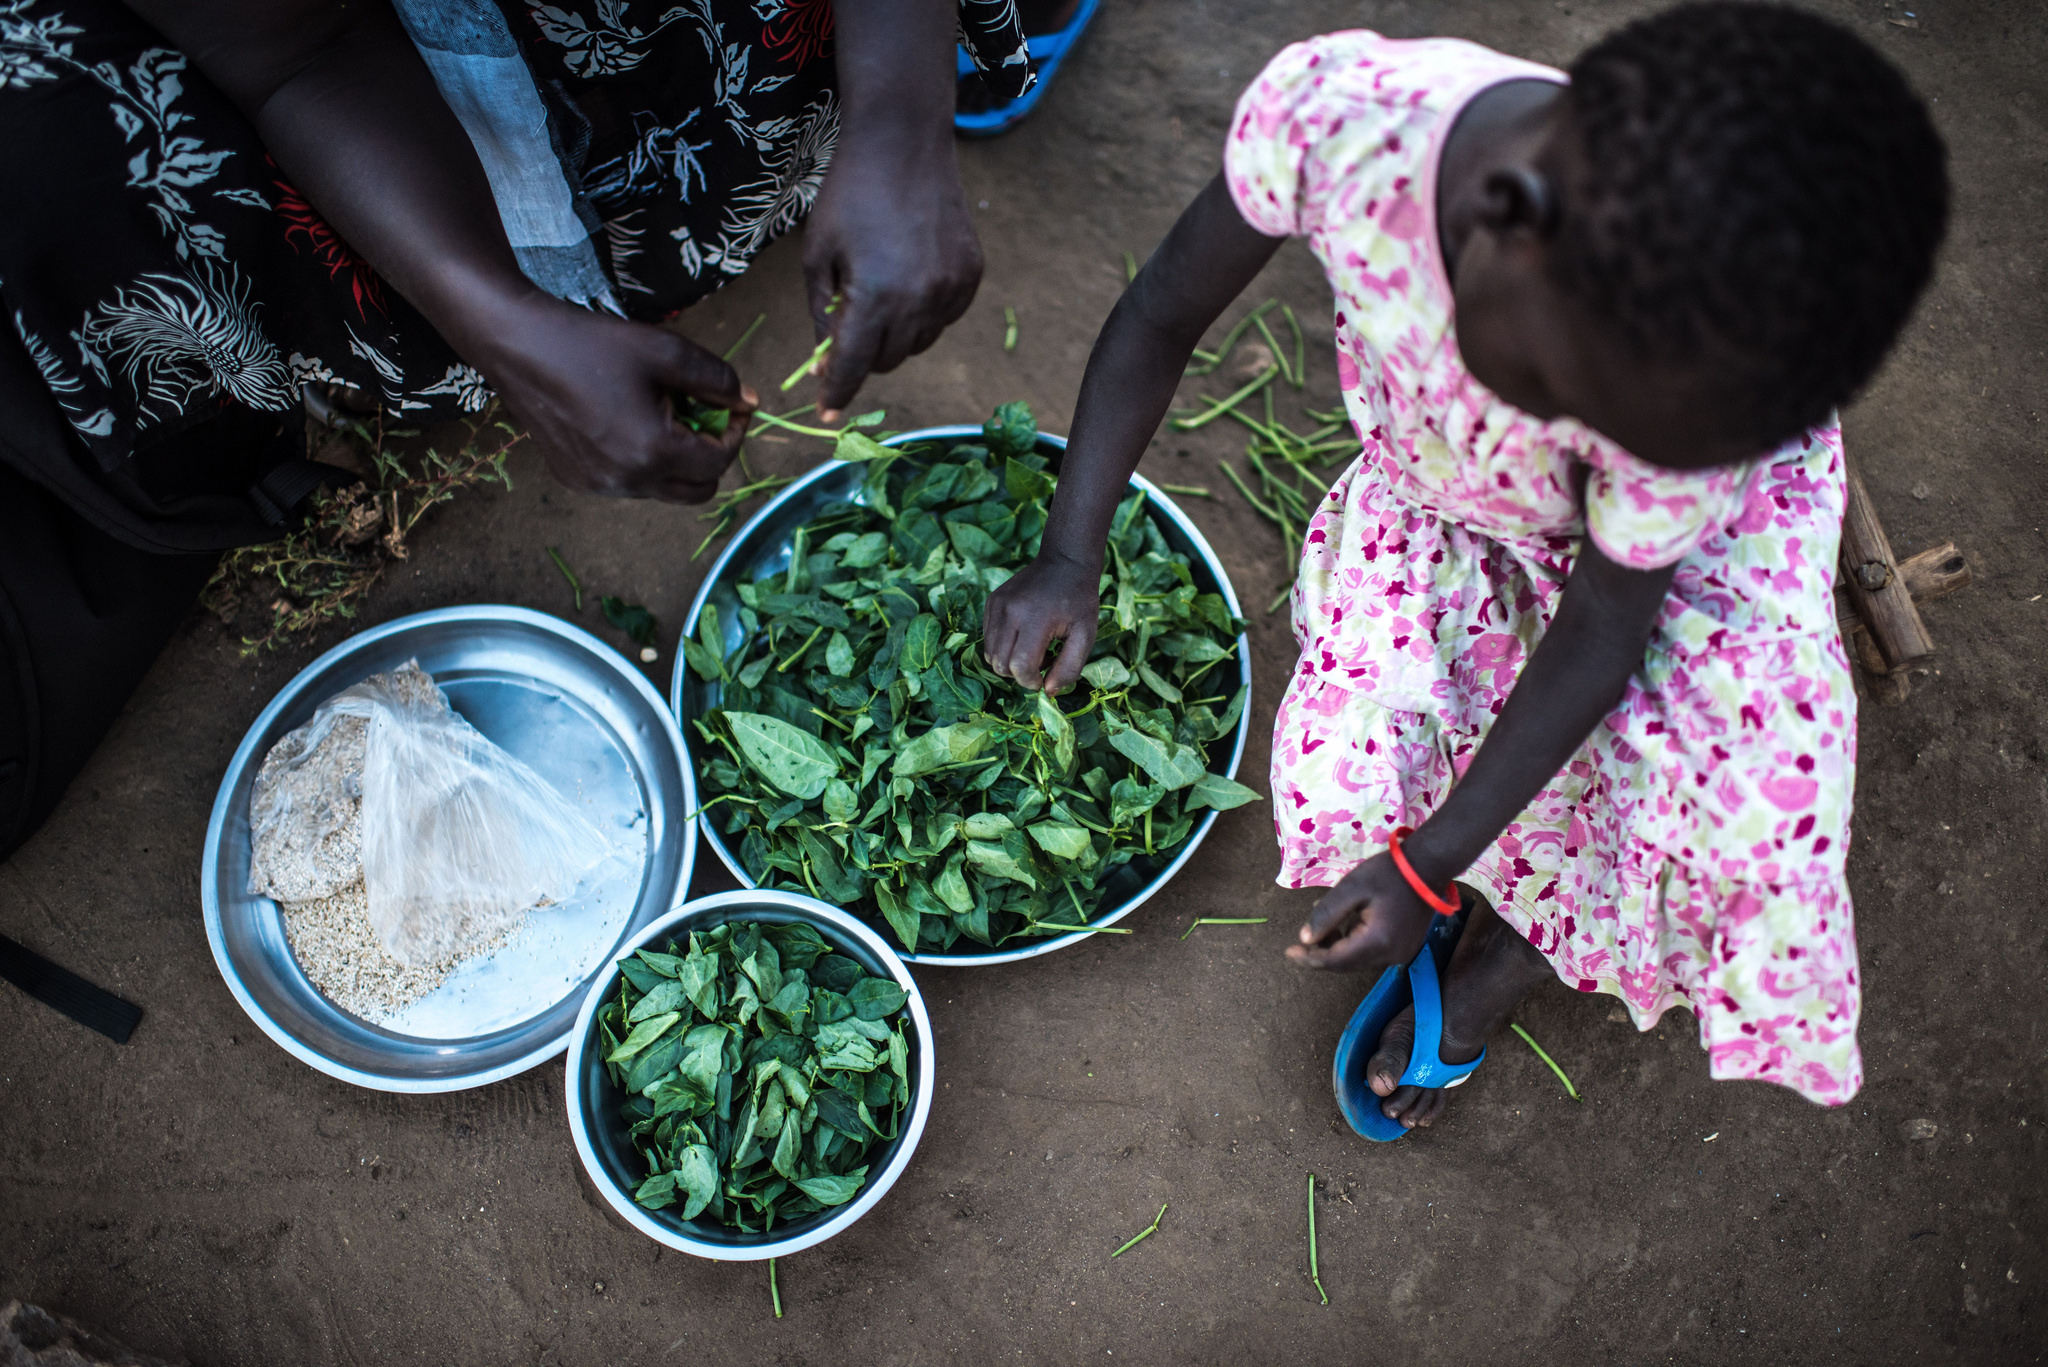 Beans and pea leaves grown by a refugee assisted by Caritas.